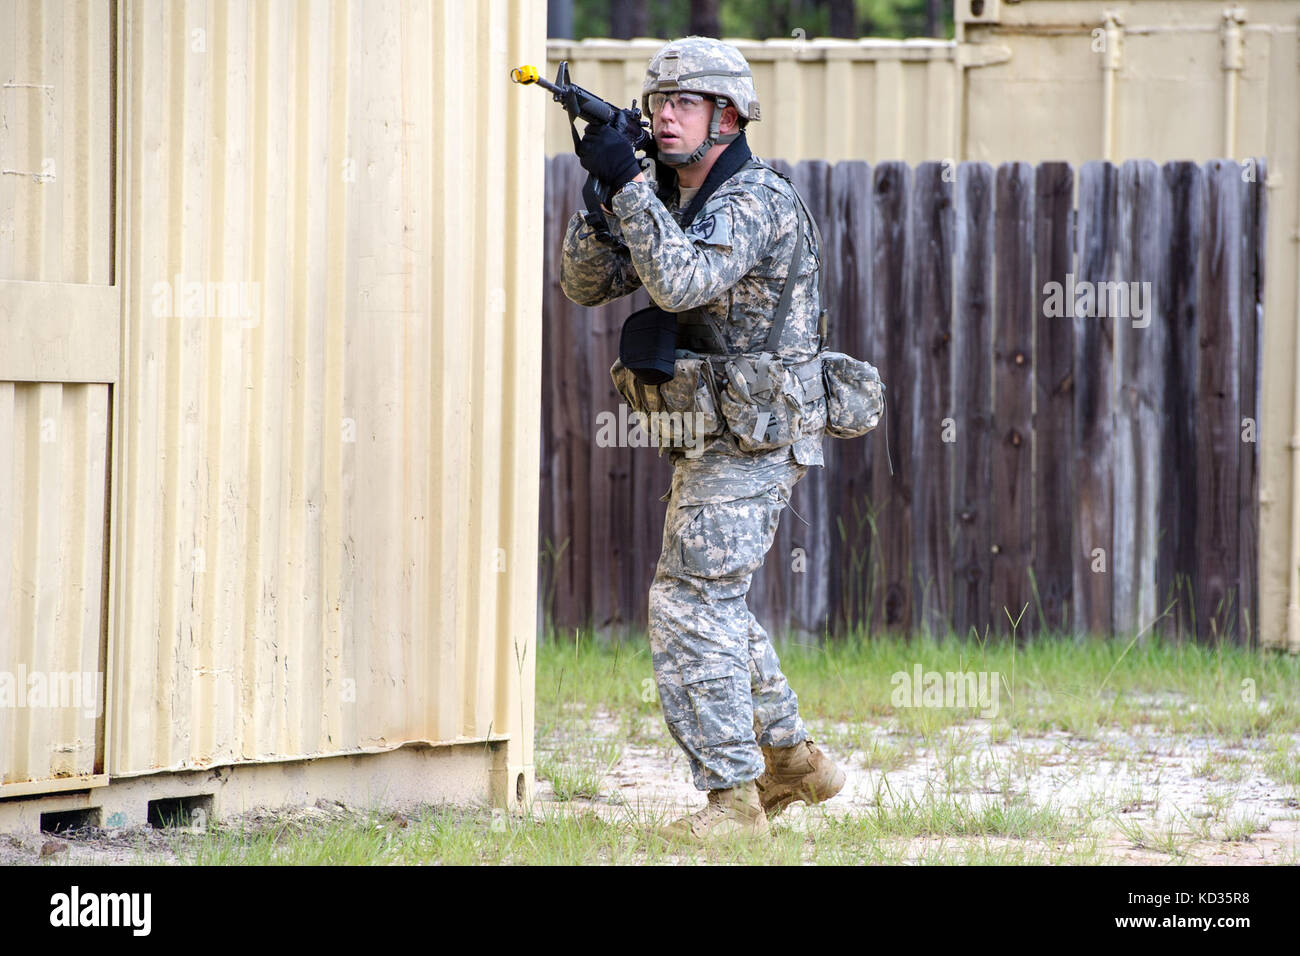 U.S. Army combat engineers assigned to the 1220th Engineer Company from, Batesburg, South Carolina, conduct urban - Stock Image